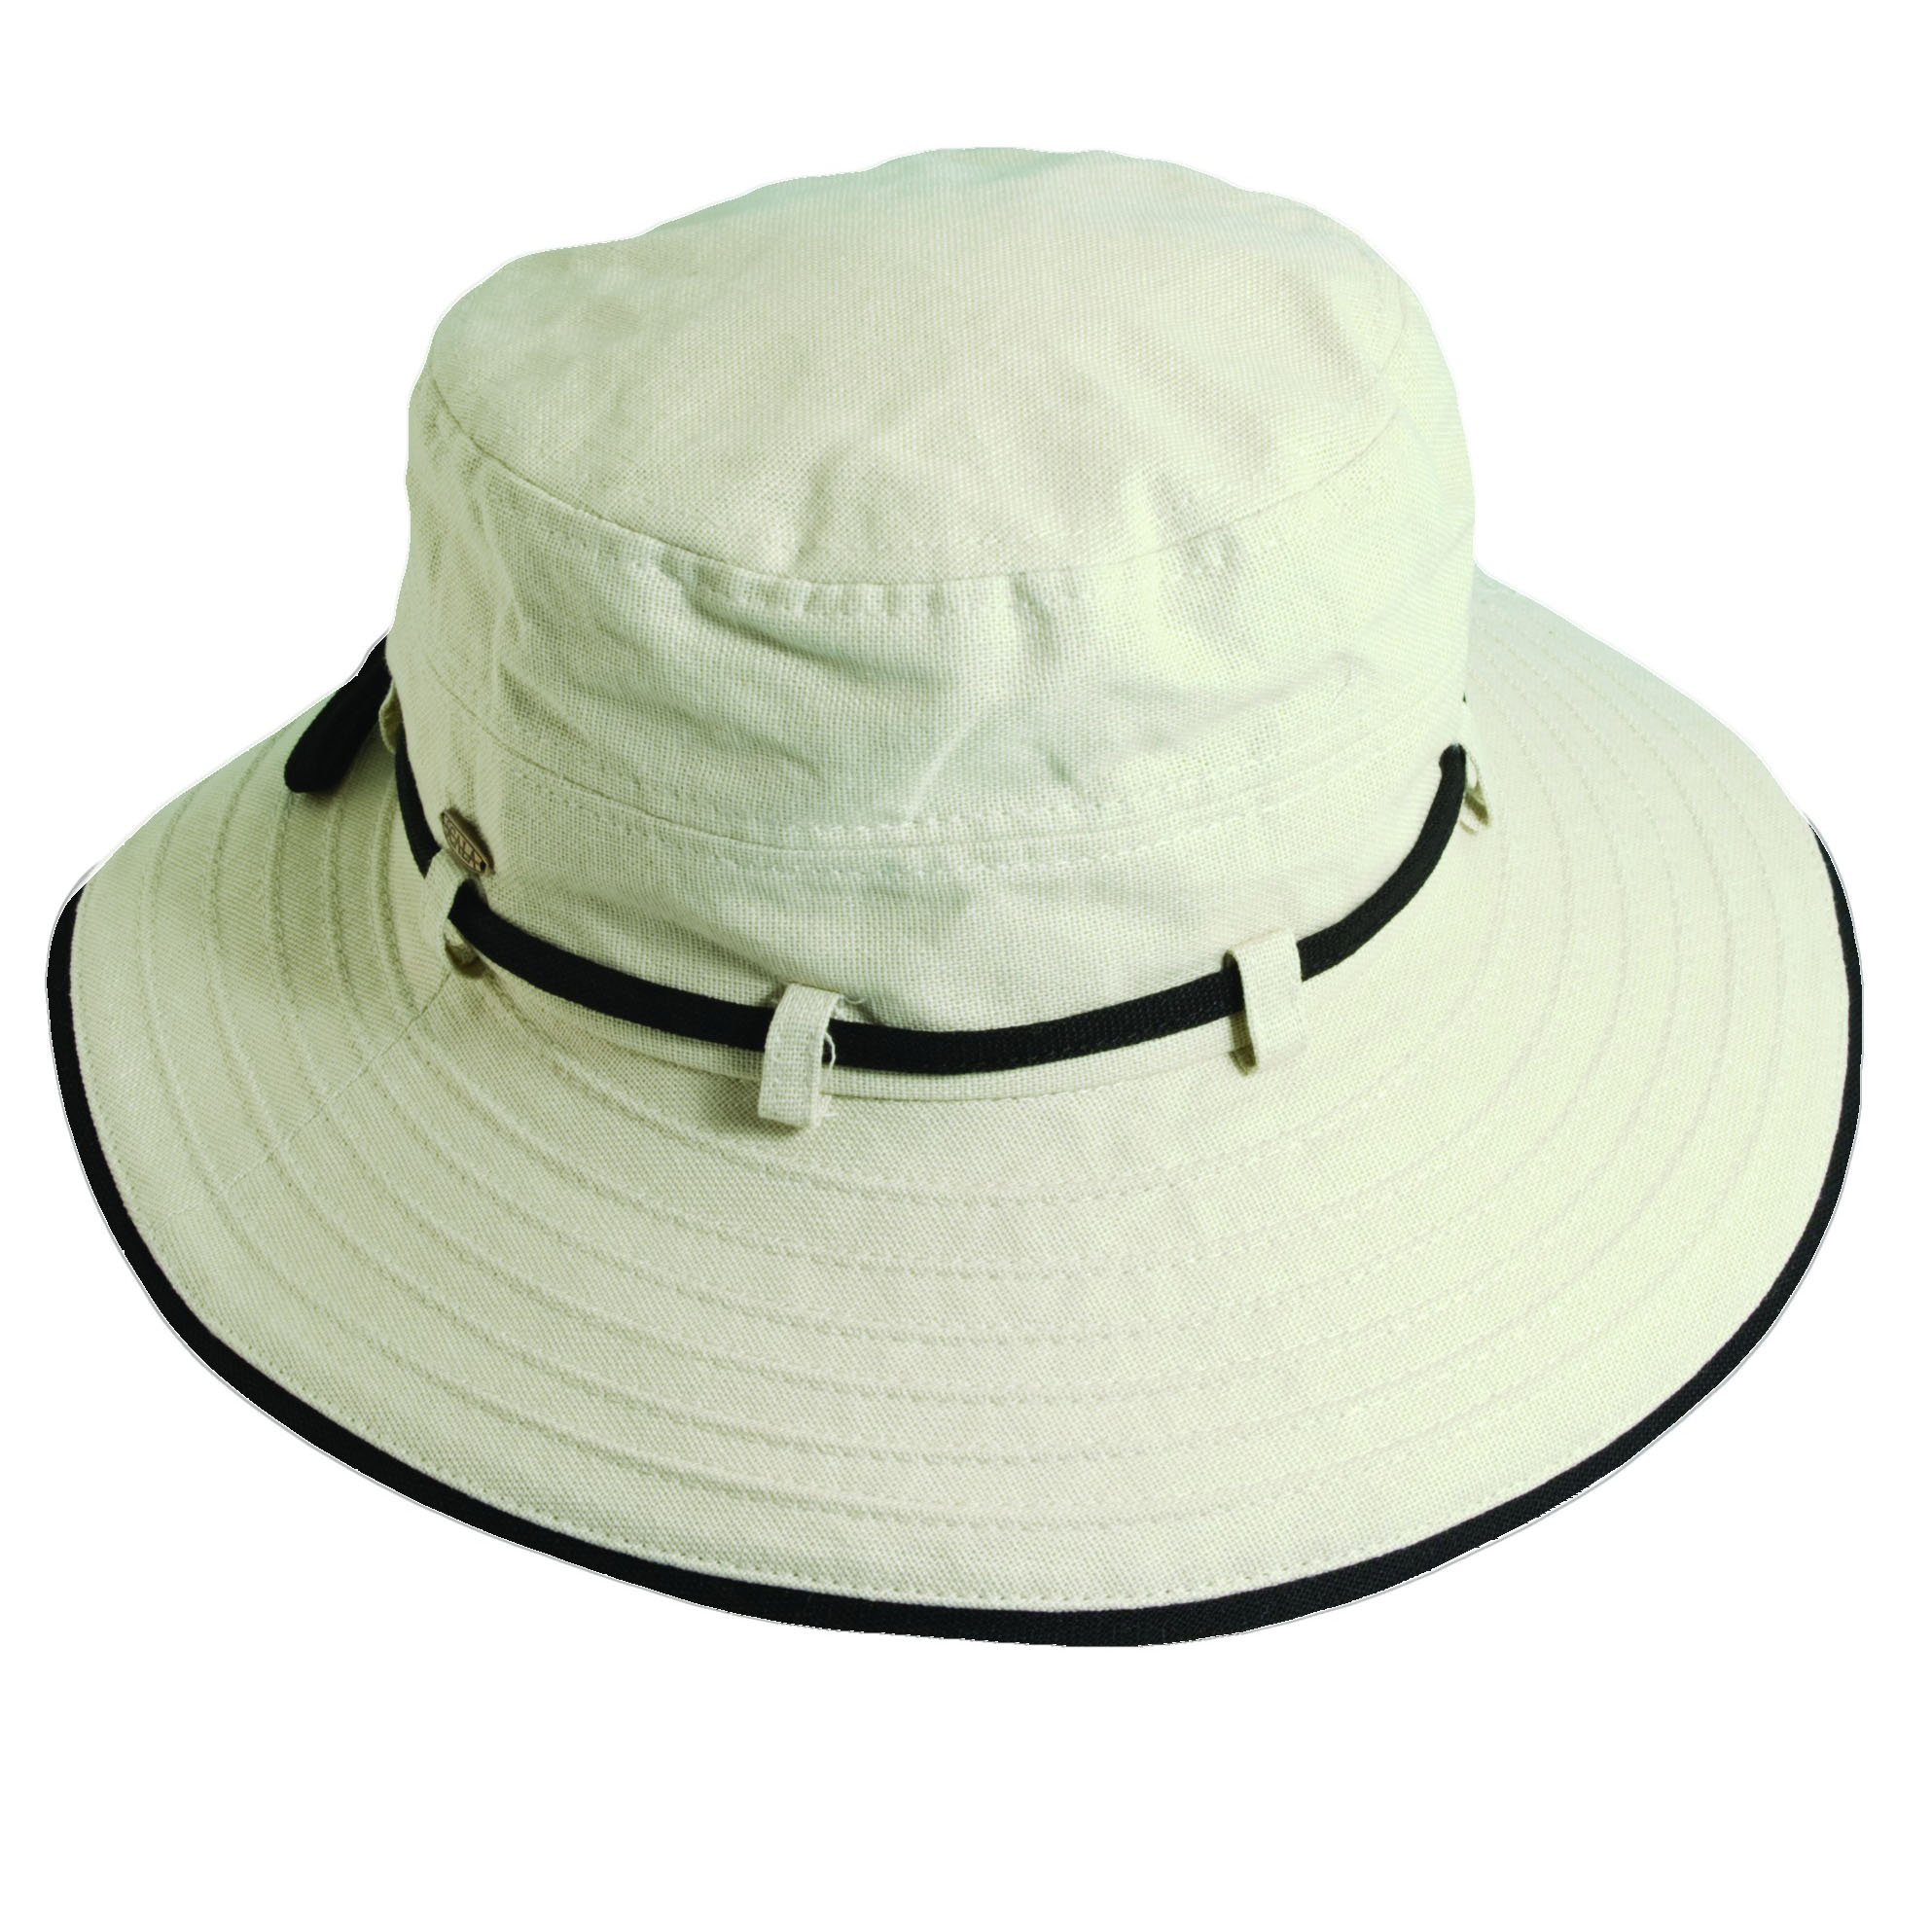 Deluxe Cotton Sun Hat Natural 78ae716bdcc6